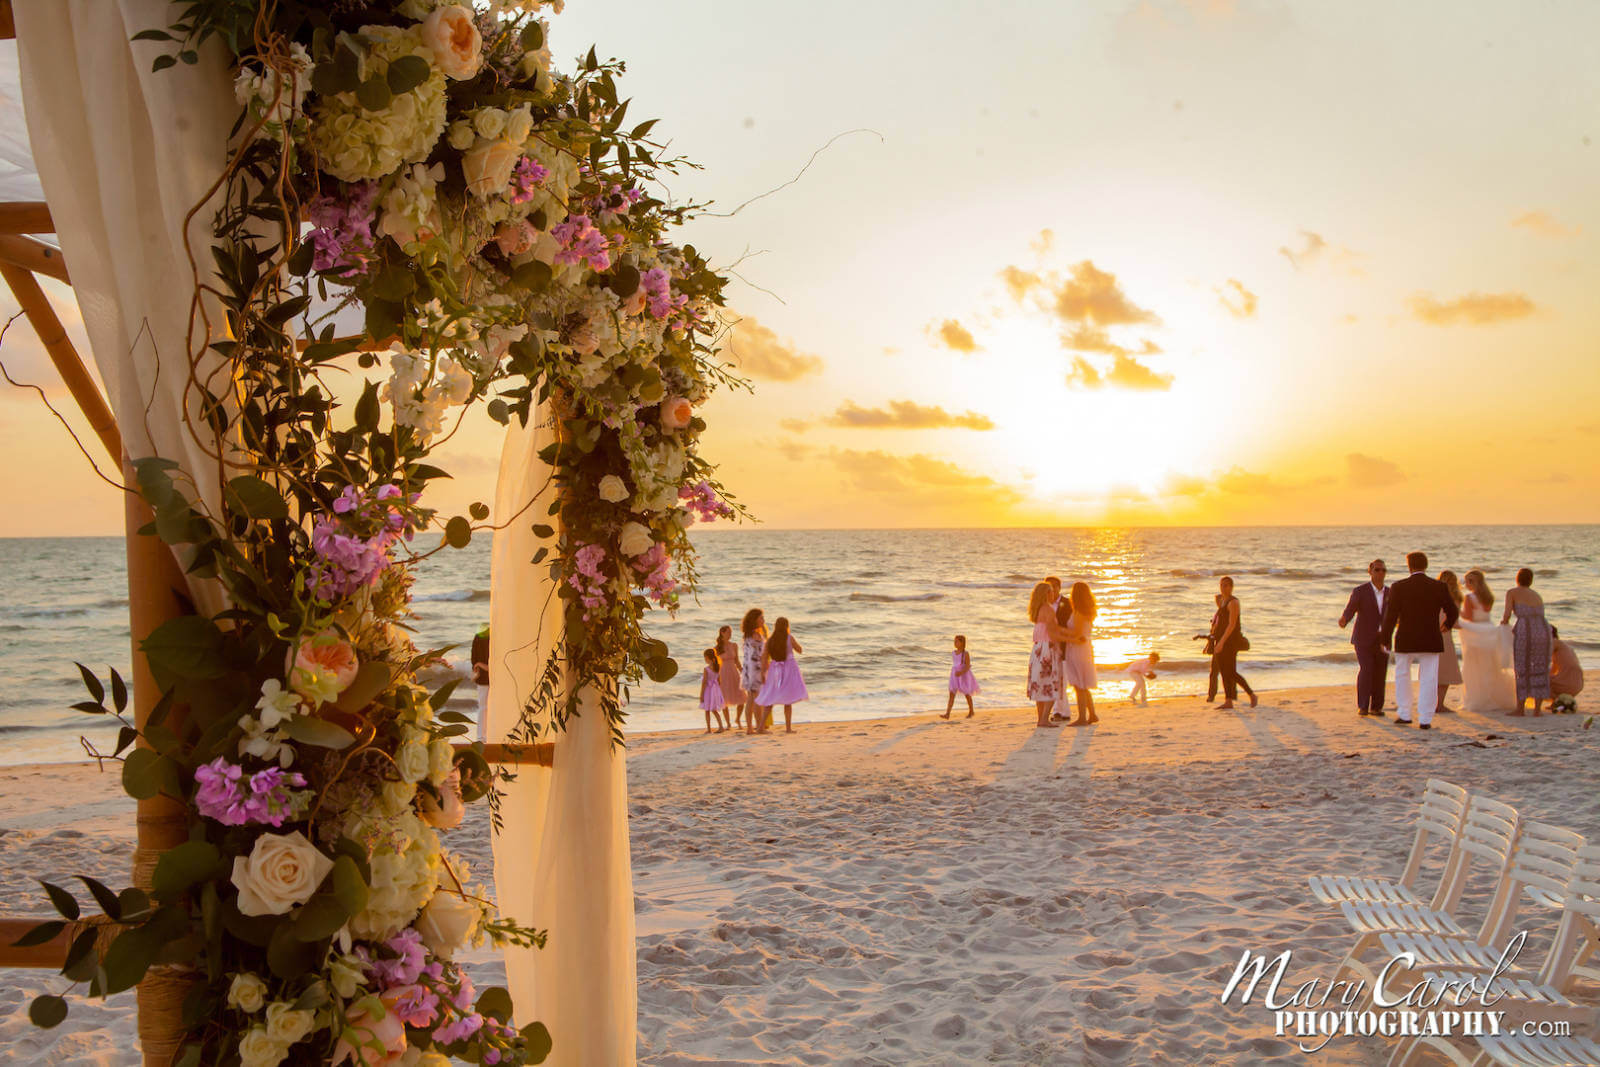 Destination Florida Beach Wedding The Blue Gulf Waters And Soft White Sand Create A Wonderful